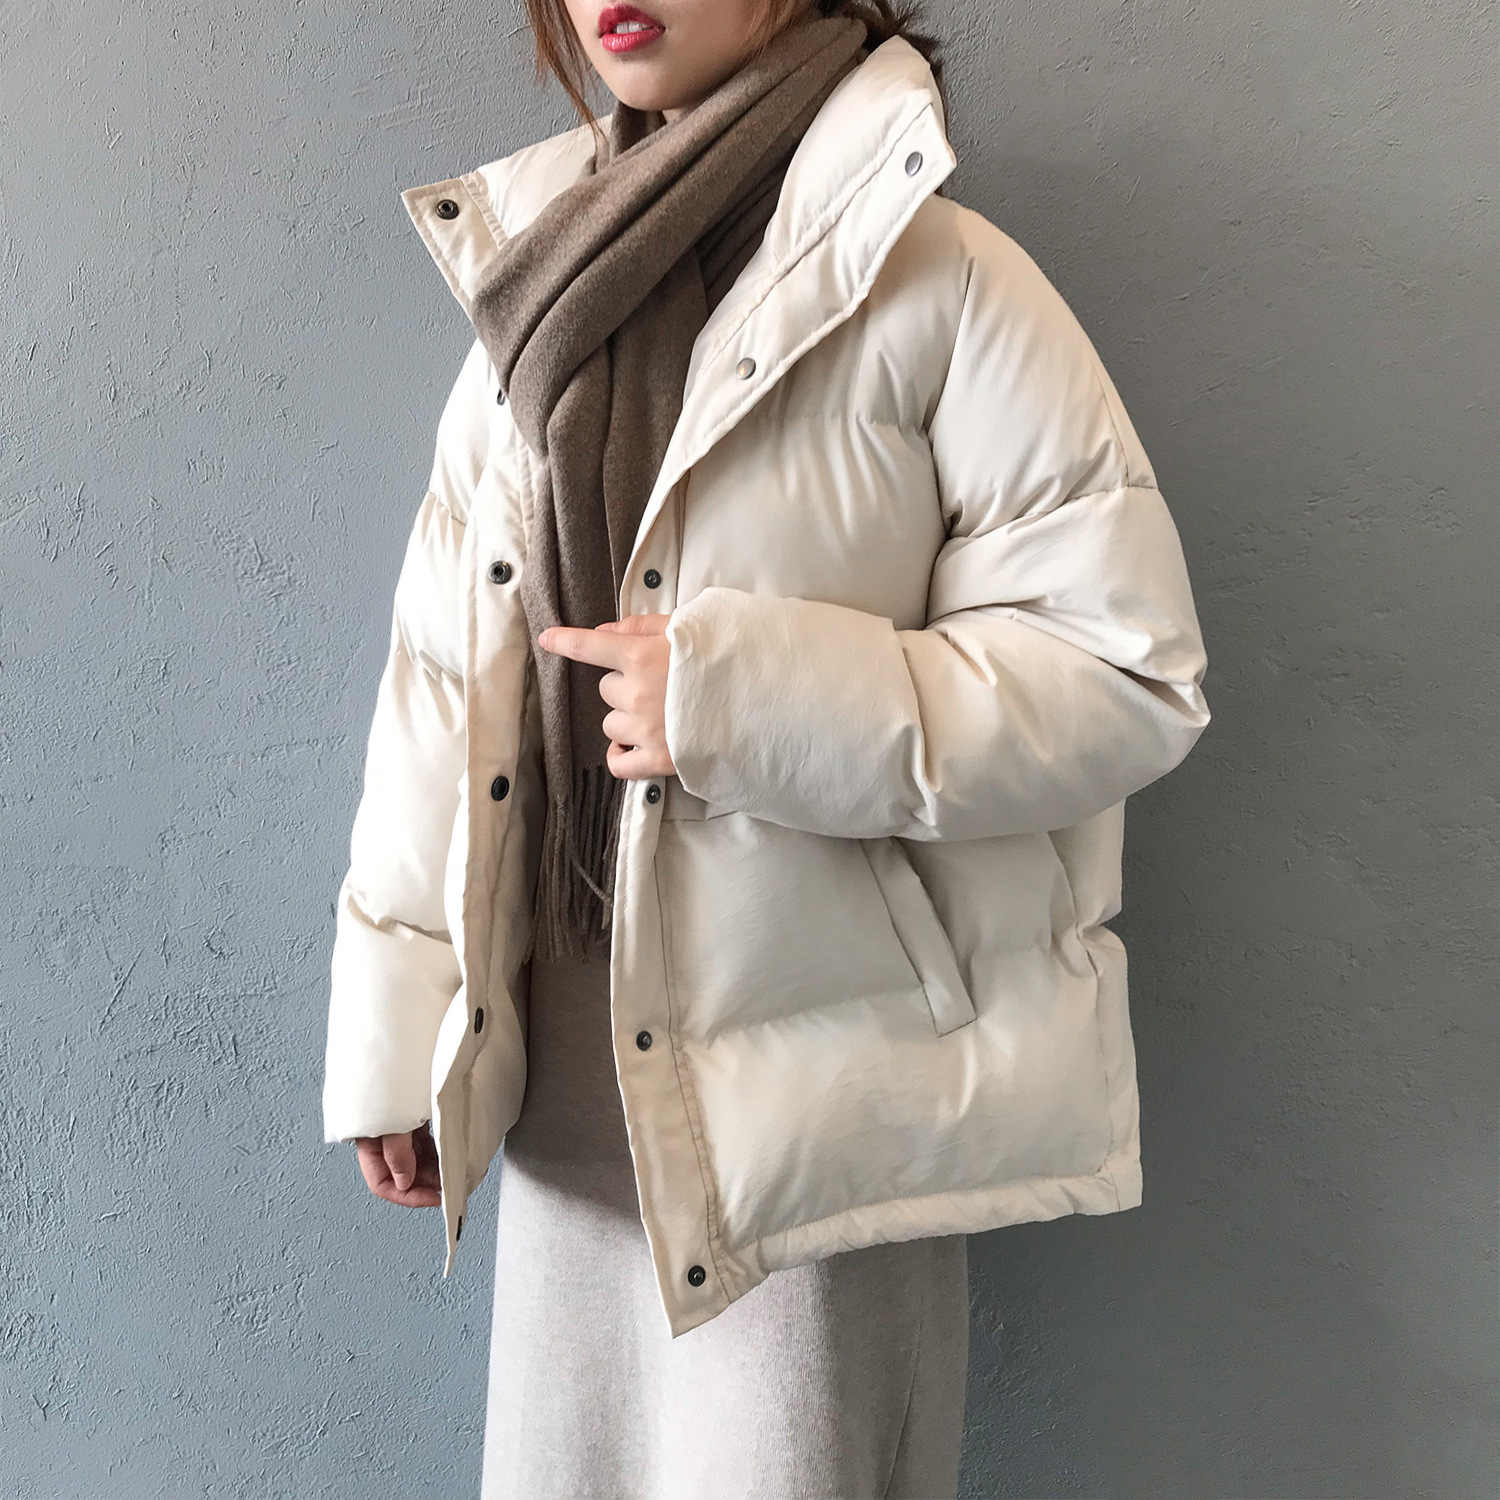 Autumn Winter Jacket Women Coat 2019 Fashion Female Stand Collor Winter Jacket Women Parka Warm Casual Plus Size Bread Overcoat